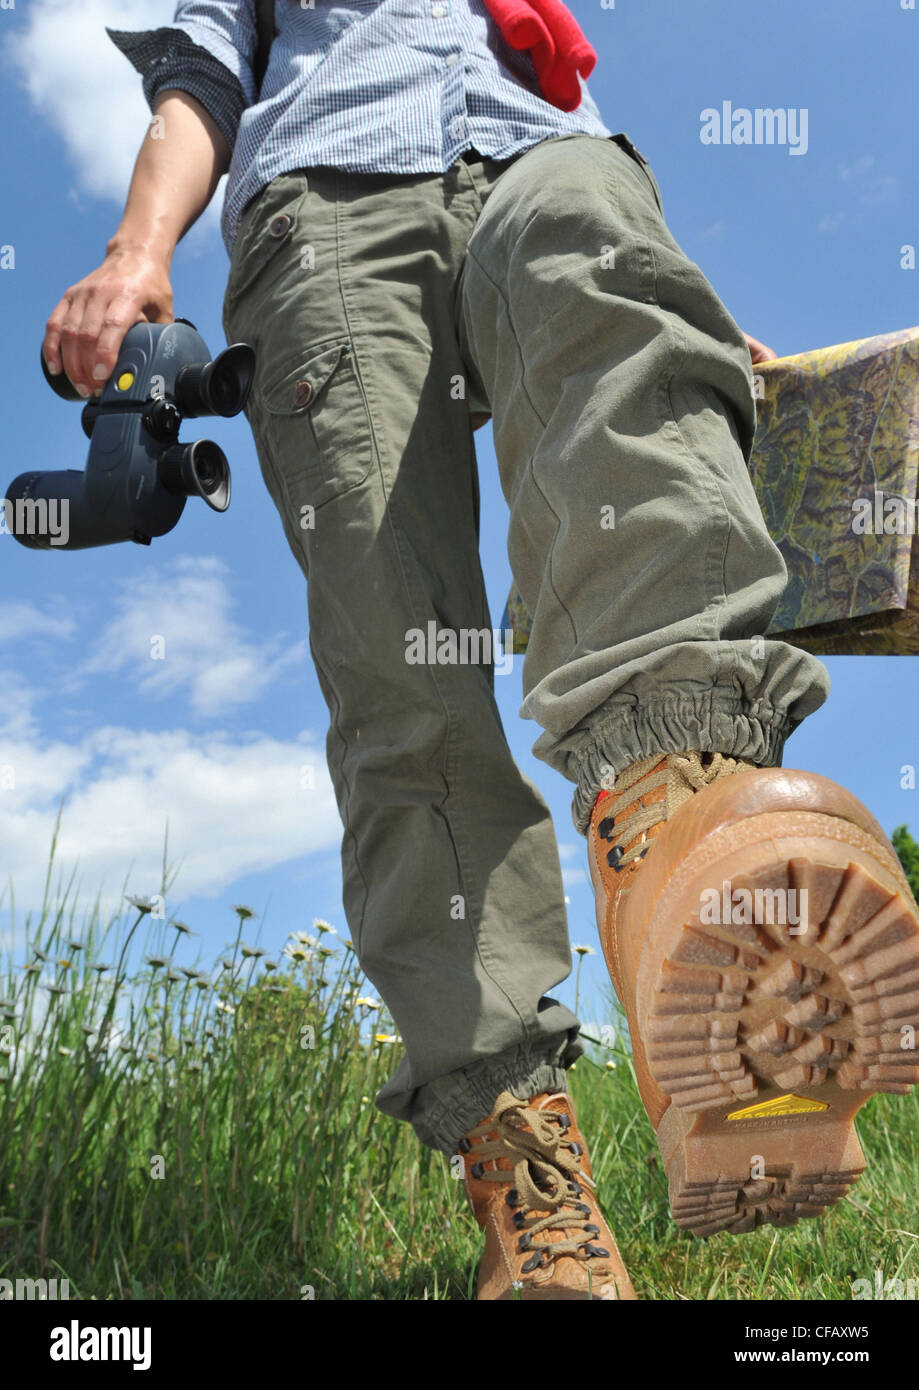 Walking, Hiking, traveller, traveling shoes, profile, map, card, field glasses, meadow, woman, Switzerland - Stock Image